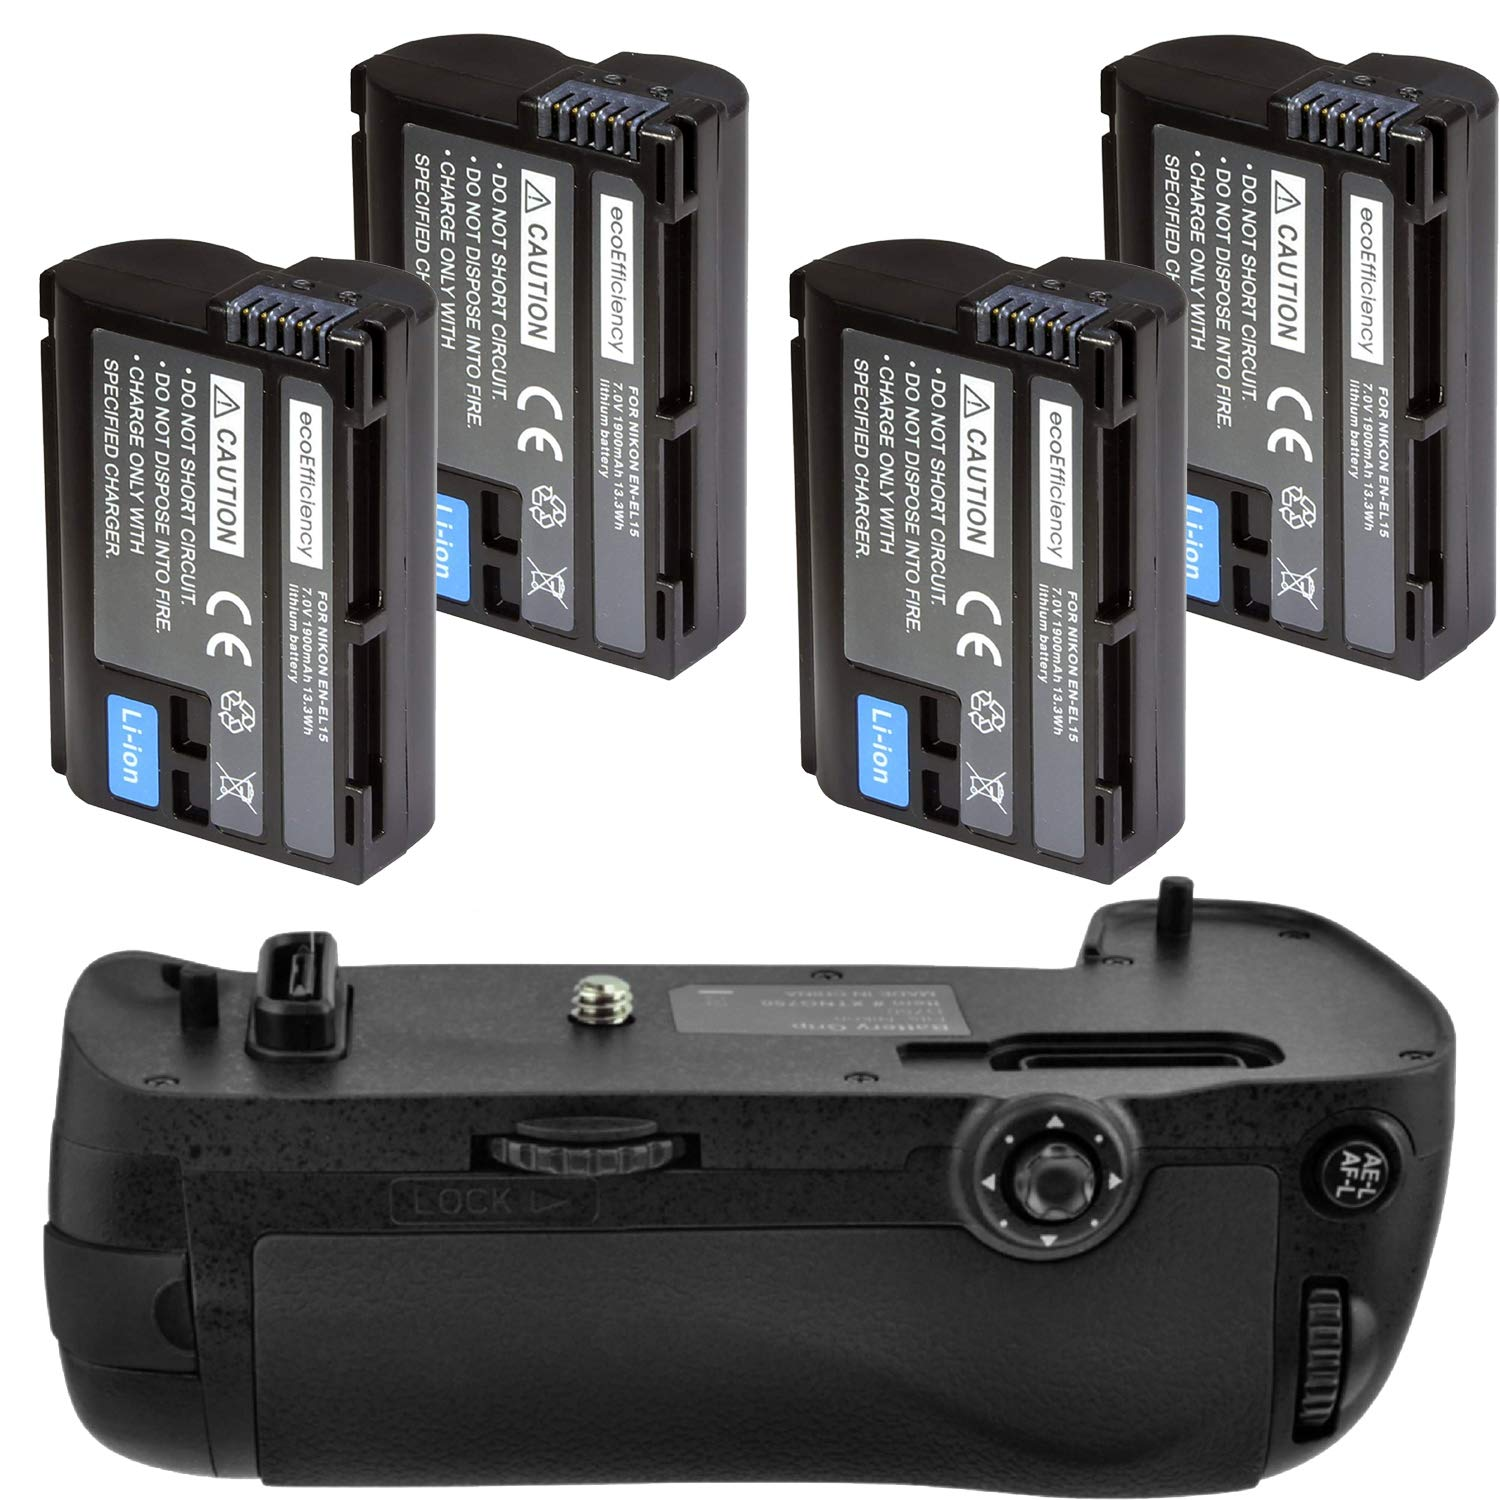 Battery Grip Kit for Nikon D750 DSLR Camera (MB-D16 Replacement)-Includes Qty 4 ENEL15 Batteries + Vertical Battery Grip by Big Mike's